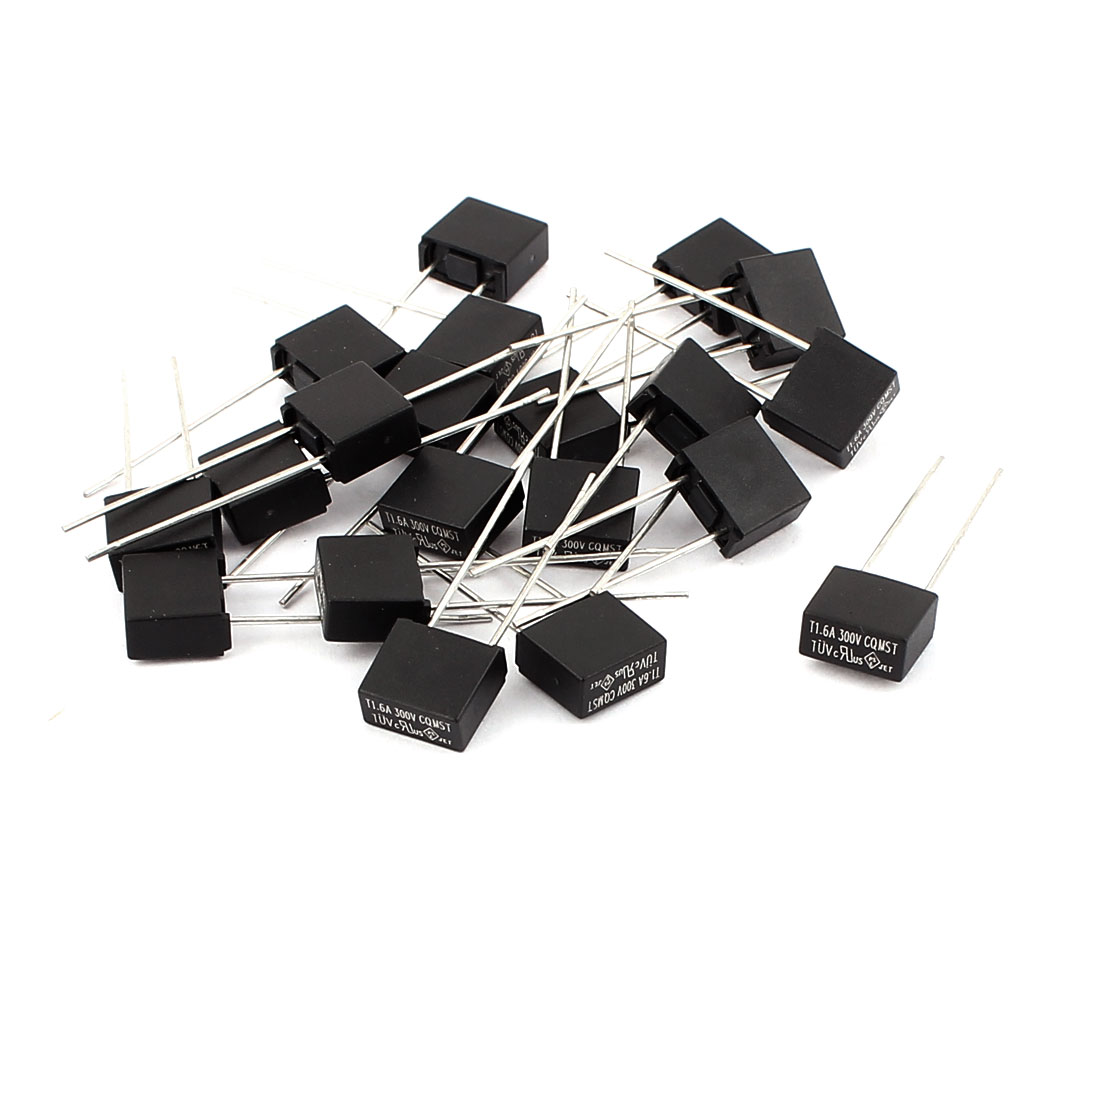 20 Pcs CQMST T1.6A 1.6A 300V Square Miniature Micro Slow Blow Fuse